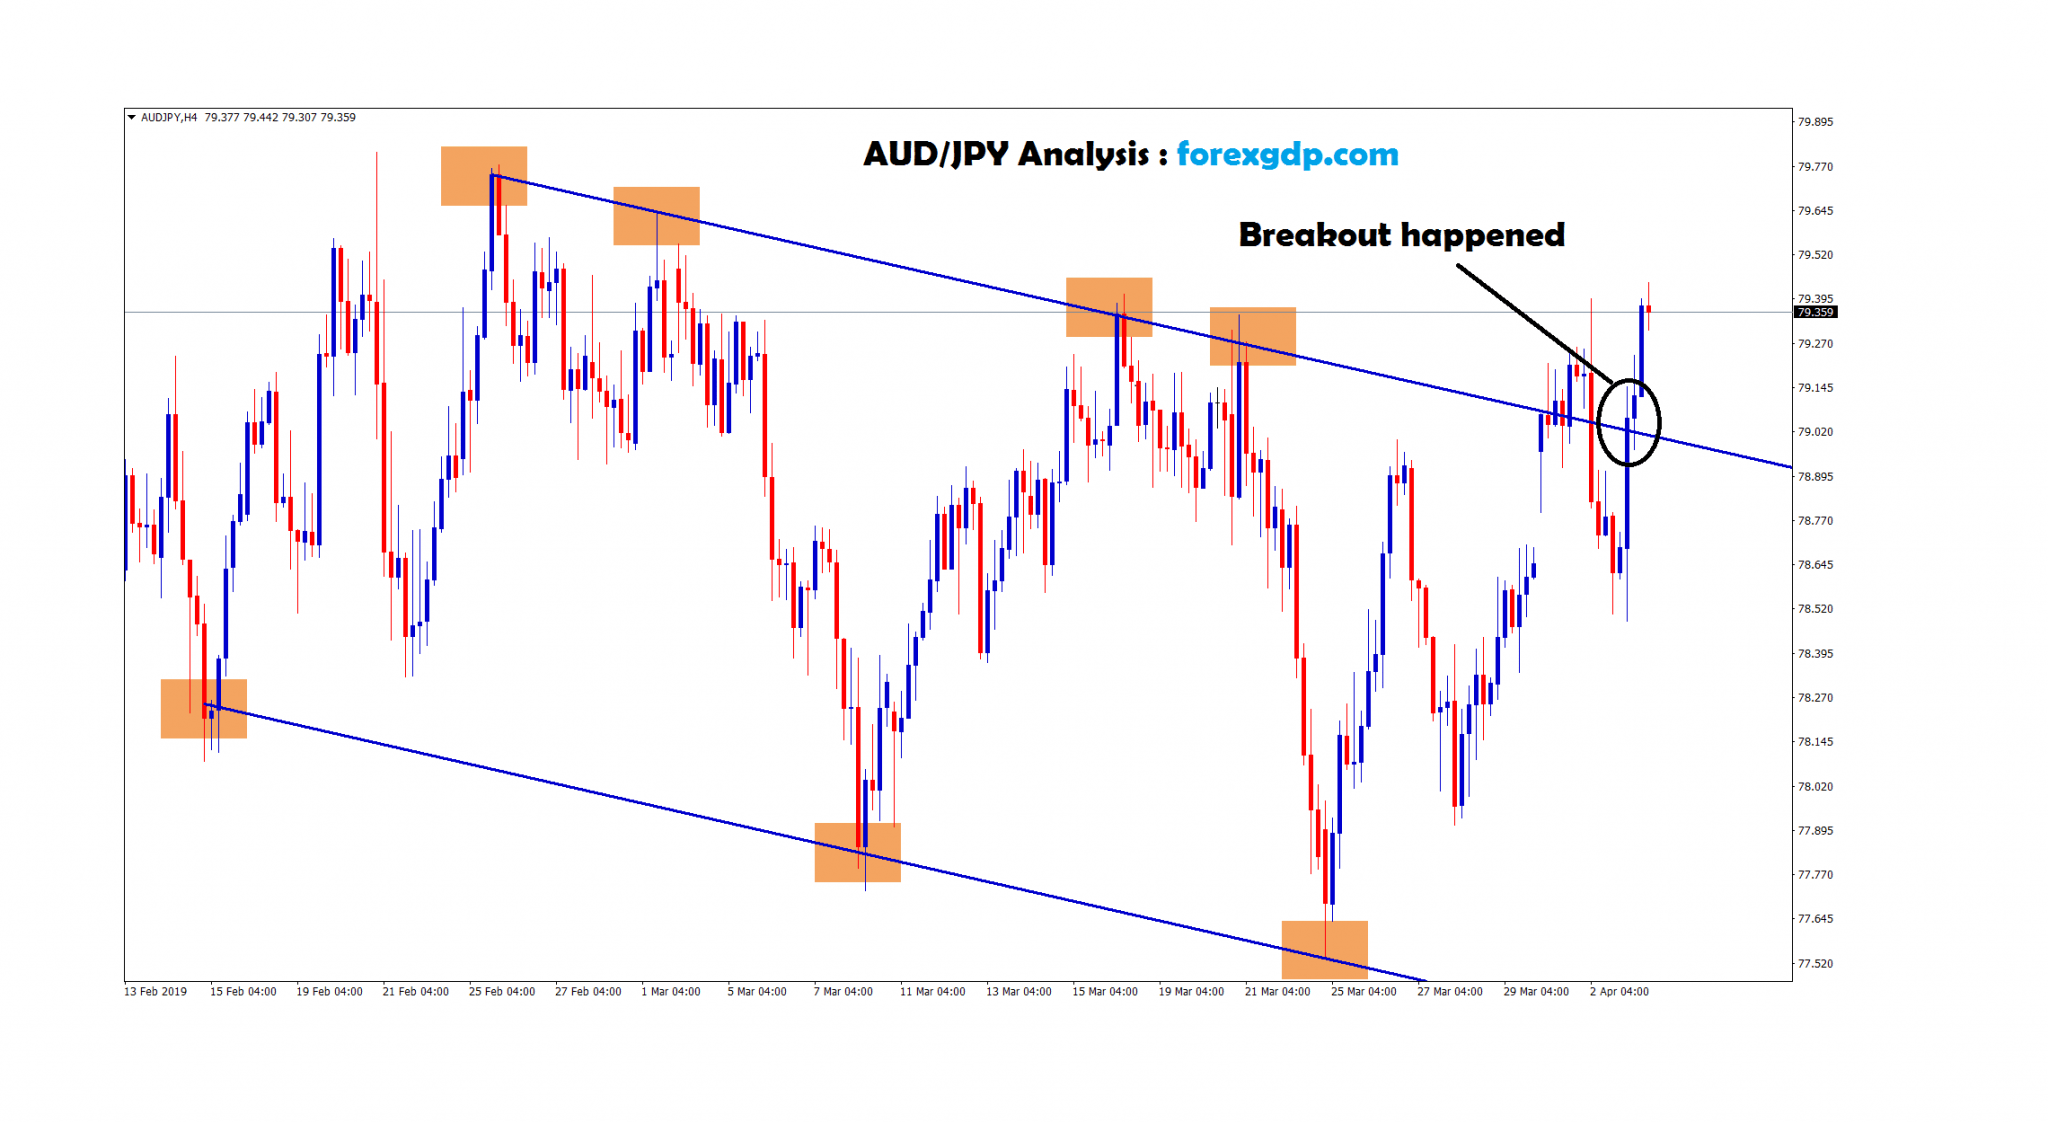 breakout happened at the top zone in aud/jpy